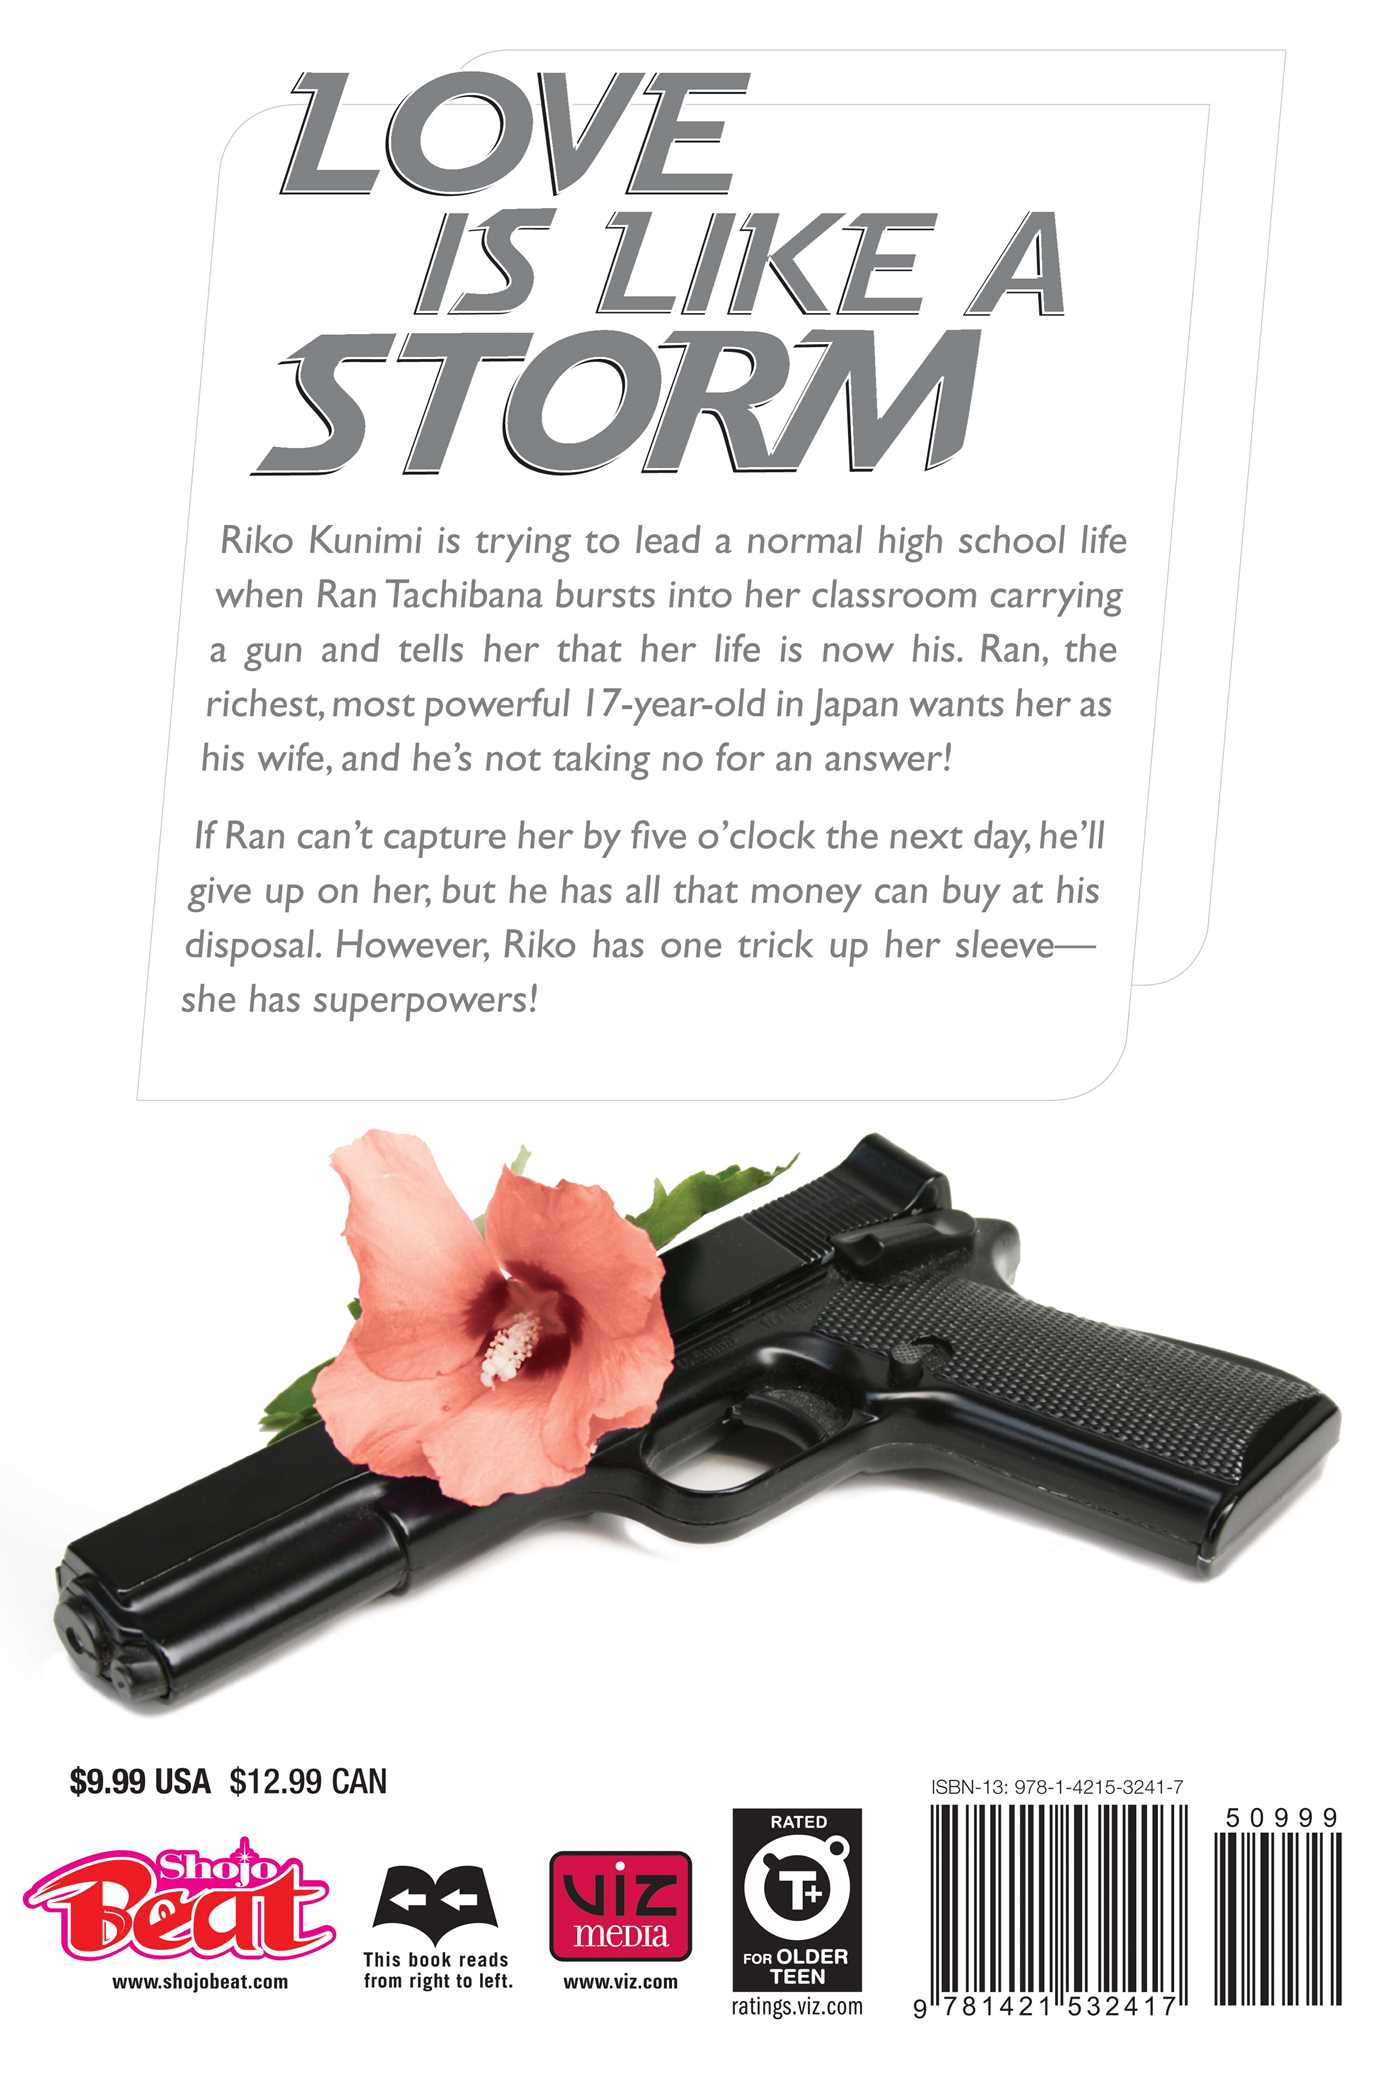 Flower-in-a-storm-vol-1-9781421532417_hr-back